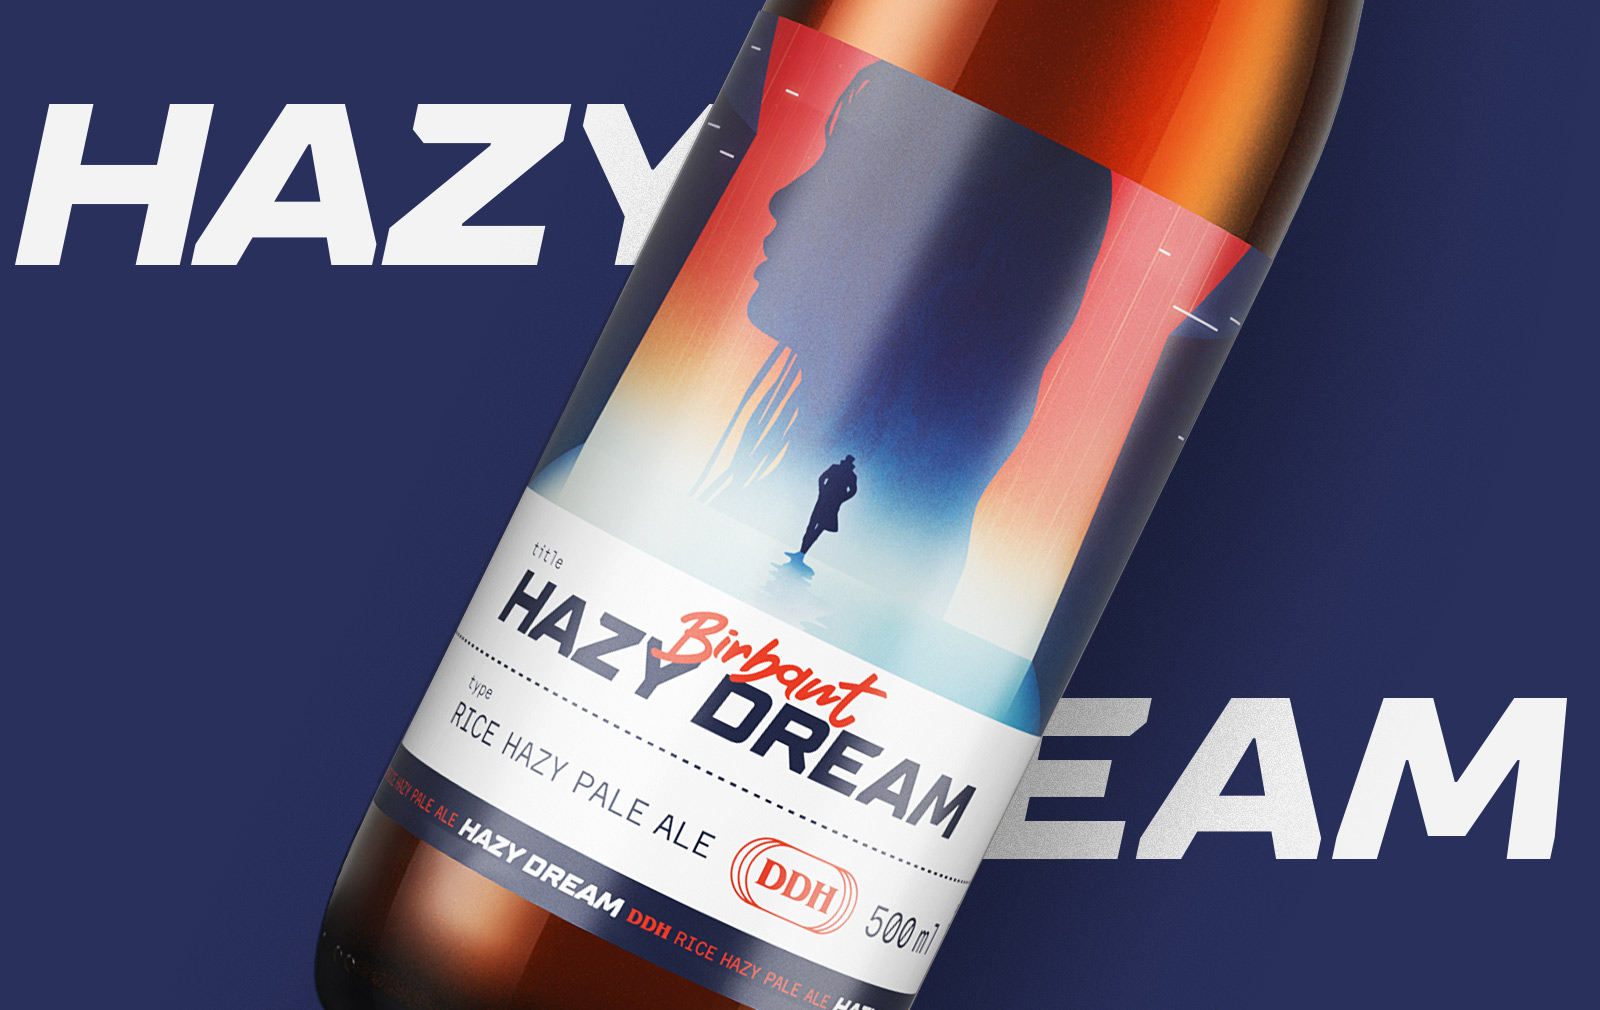 HAZY DREAM Rice Hazy Pale Ale